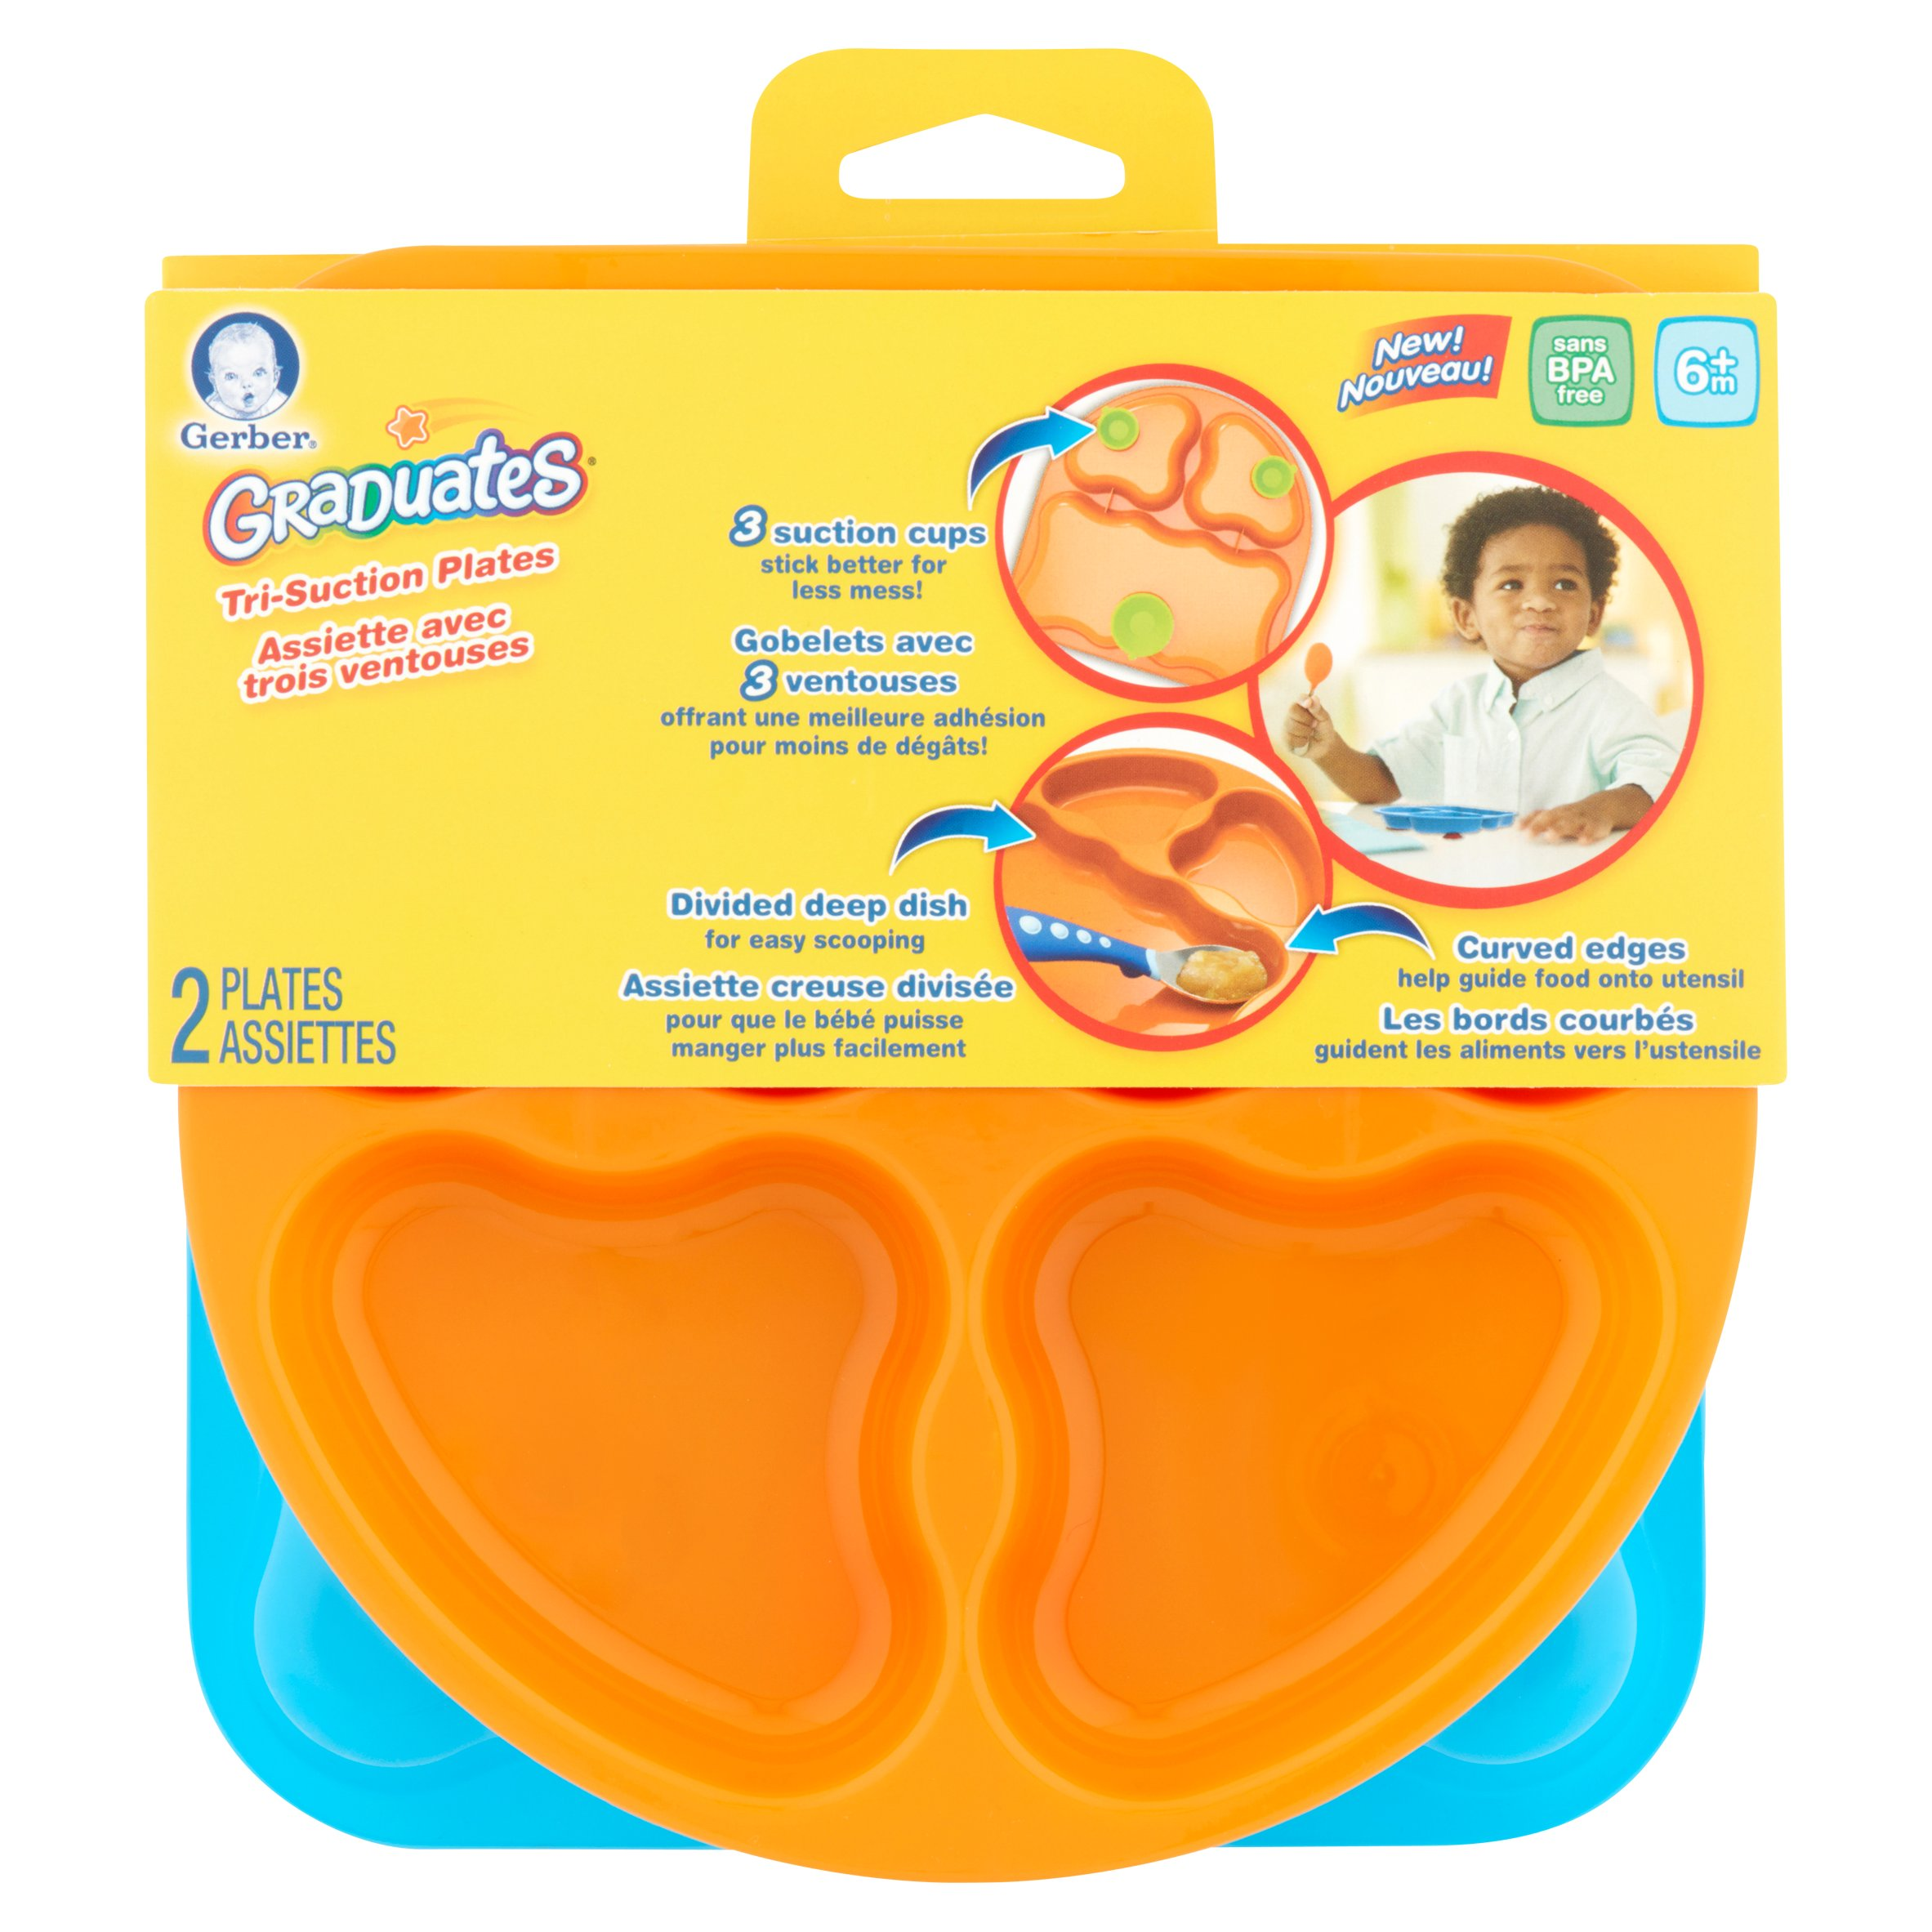 Gerber Graduates Tri Suction Plates 6m+, 2 count